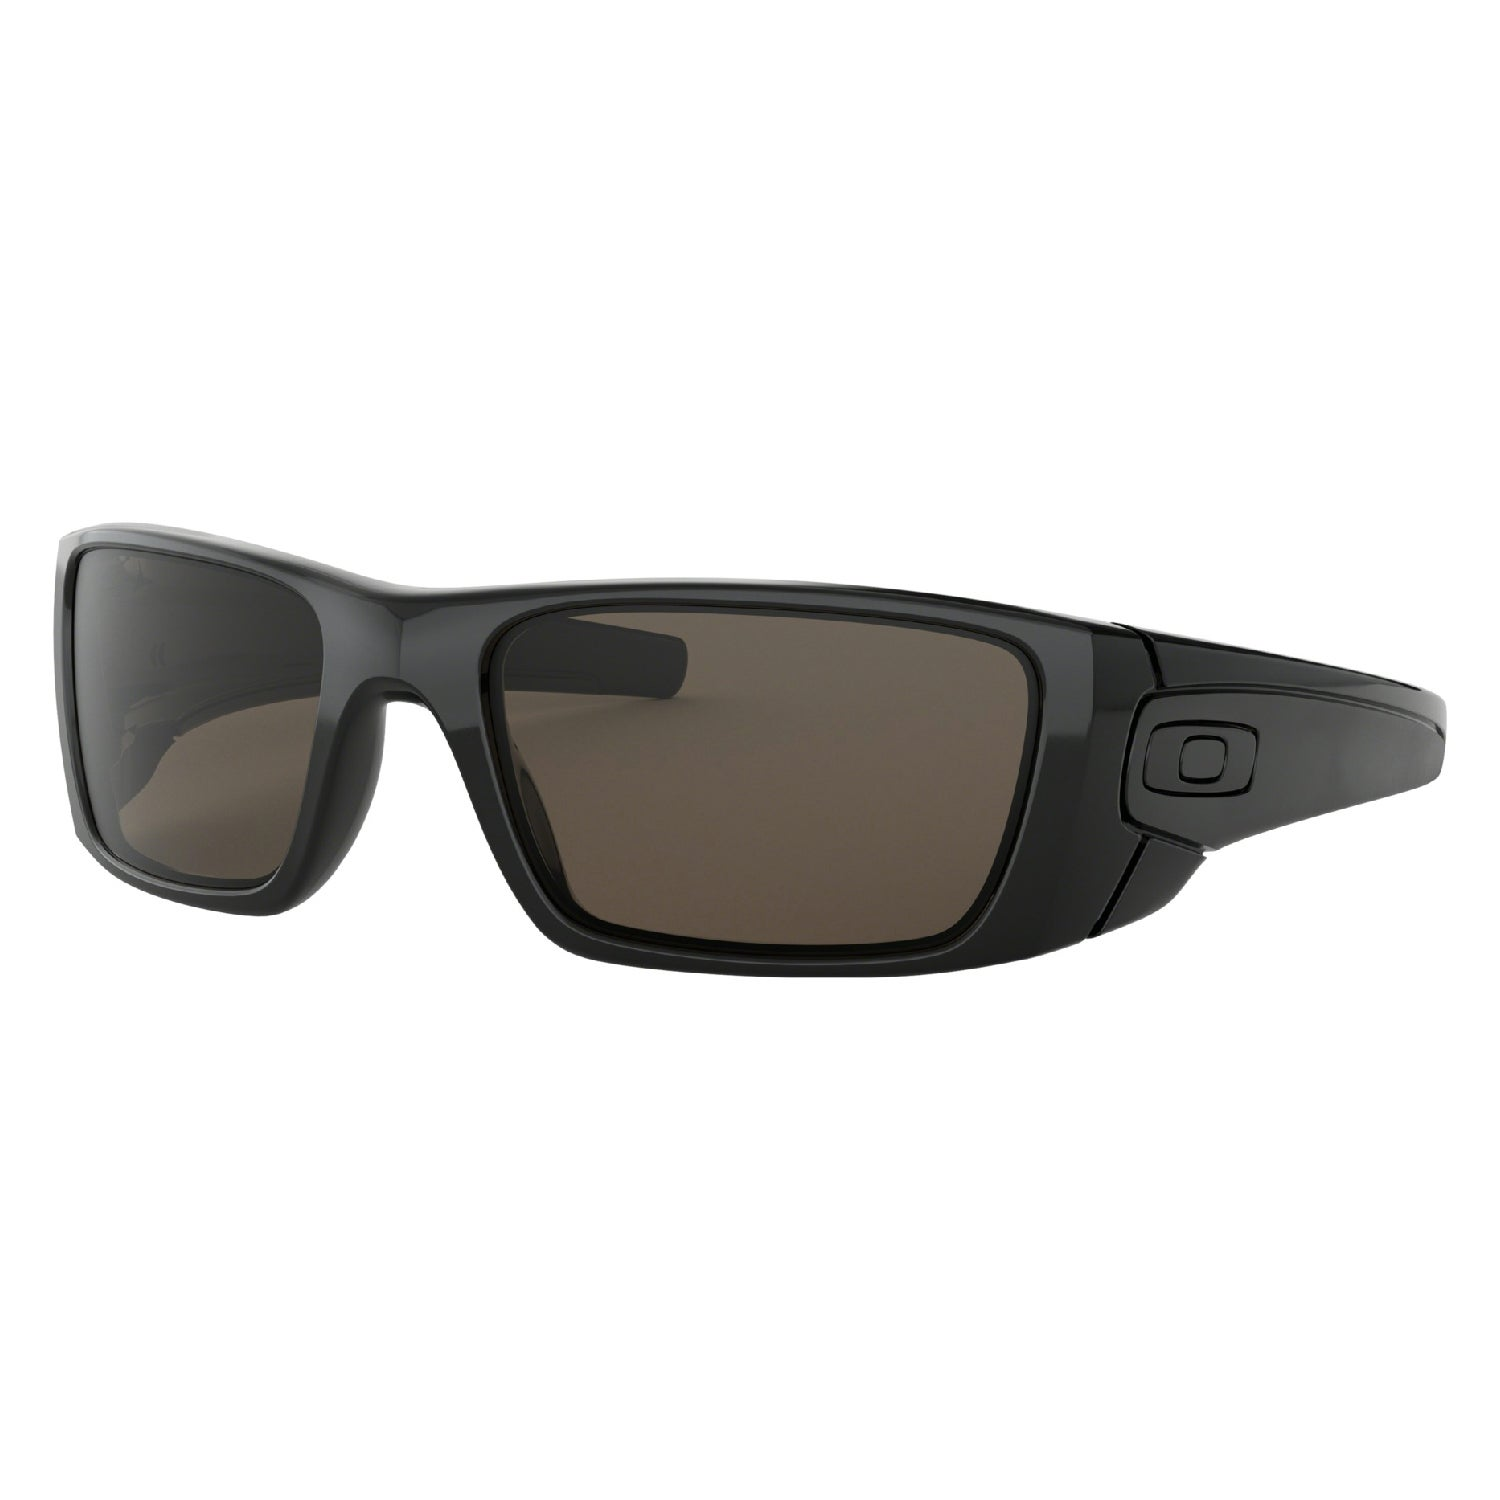 Blackleaf Sunglasses From Oakley Fuel Available Cell YbyIfv76g